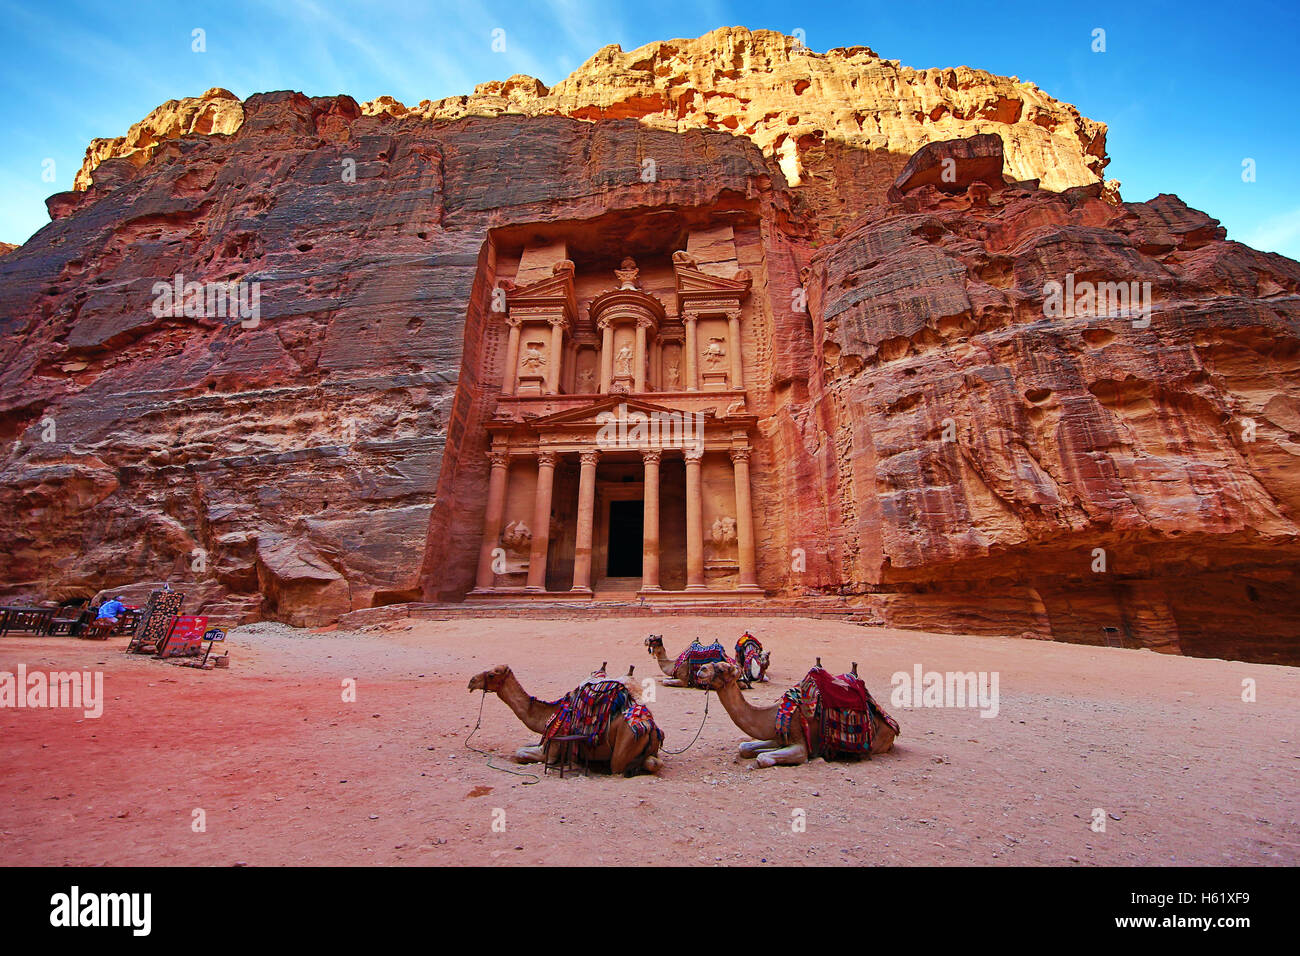 View of the Treasury, Al-Khazneh, with camels, Petra, Jordan - Stock Image